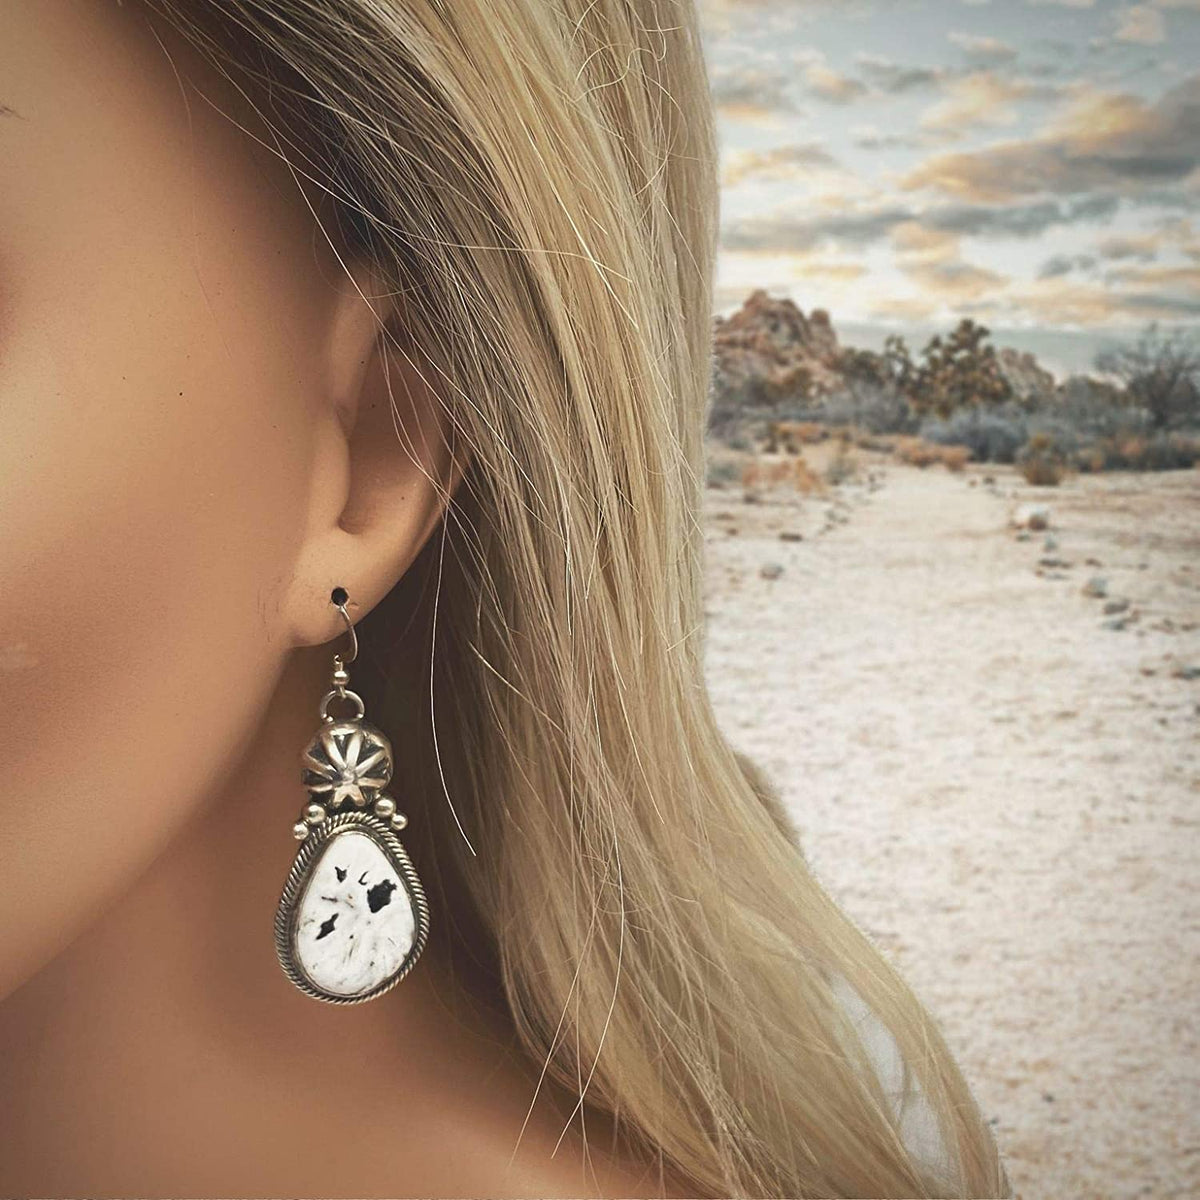 Genuine White Buffalo Stone Earrings, Sterling Silver, Authentic Navajo Native American USA Handmade, Artisan Signed, Nickle Free, French Hook, Southwest Vintage Style